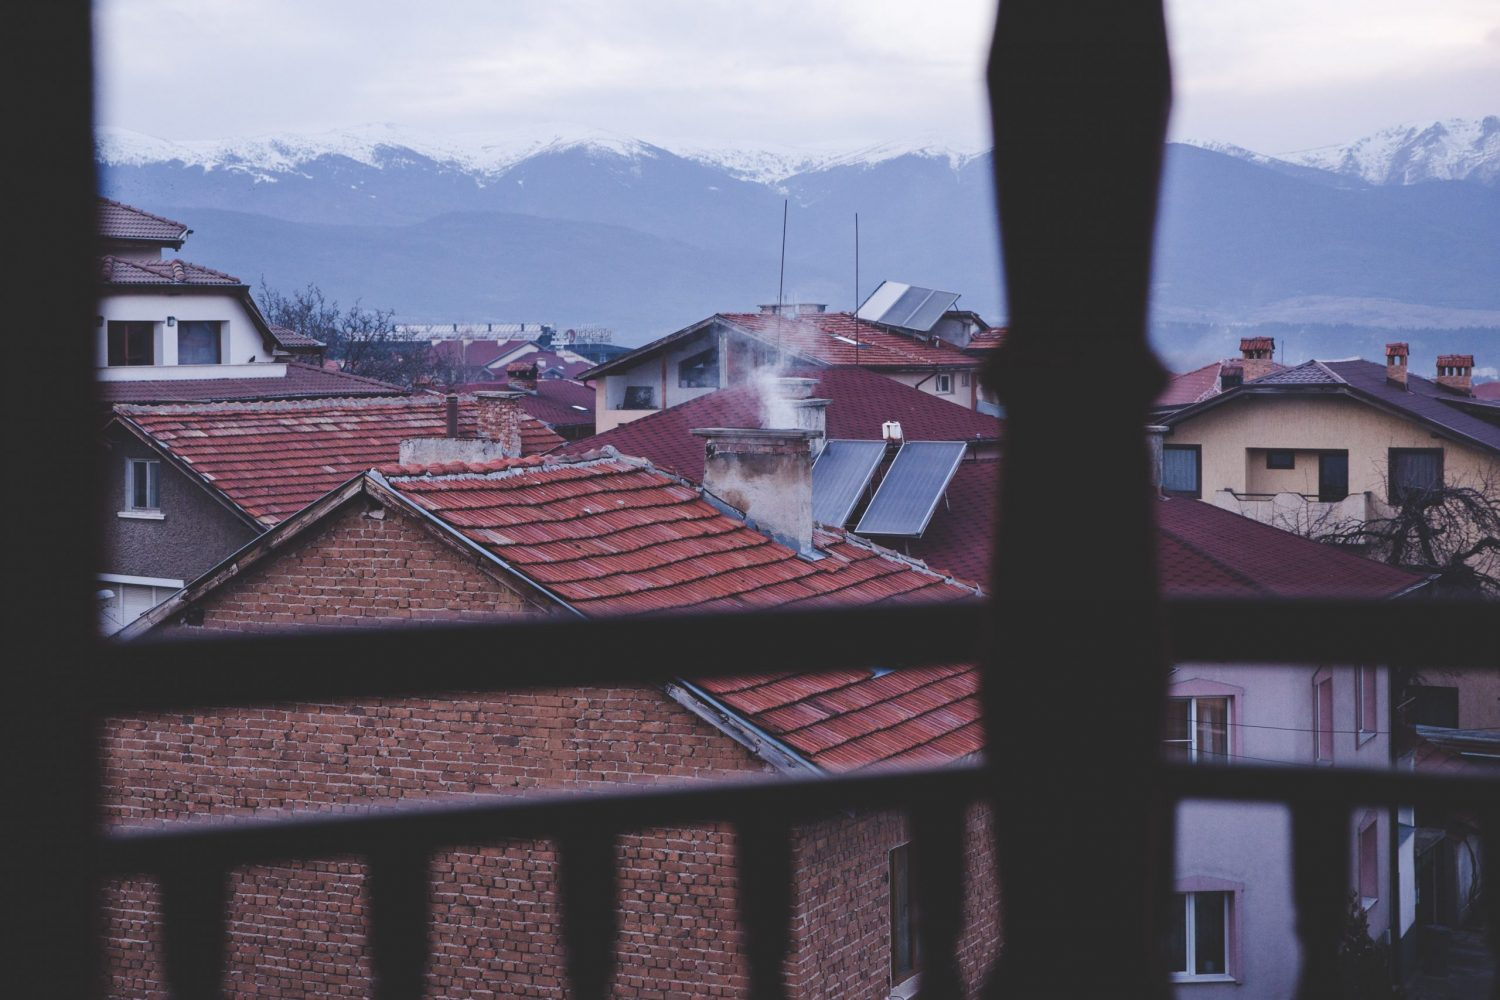 Rooftops in Bansko, Bulgaria in the evening